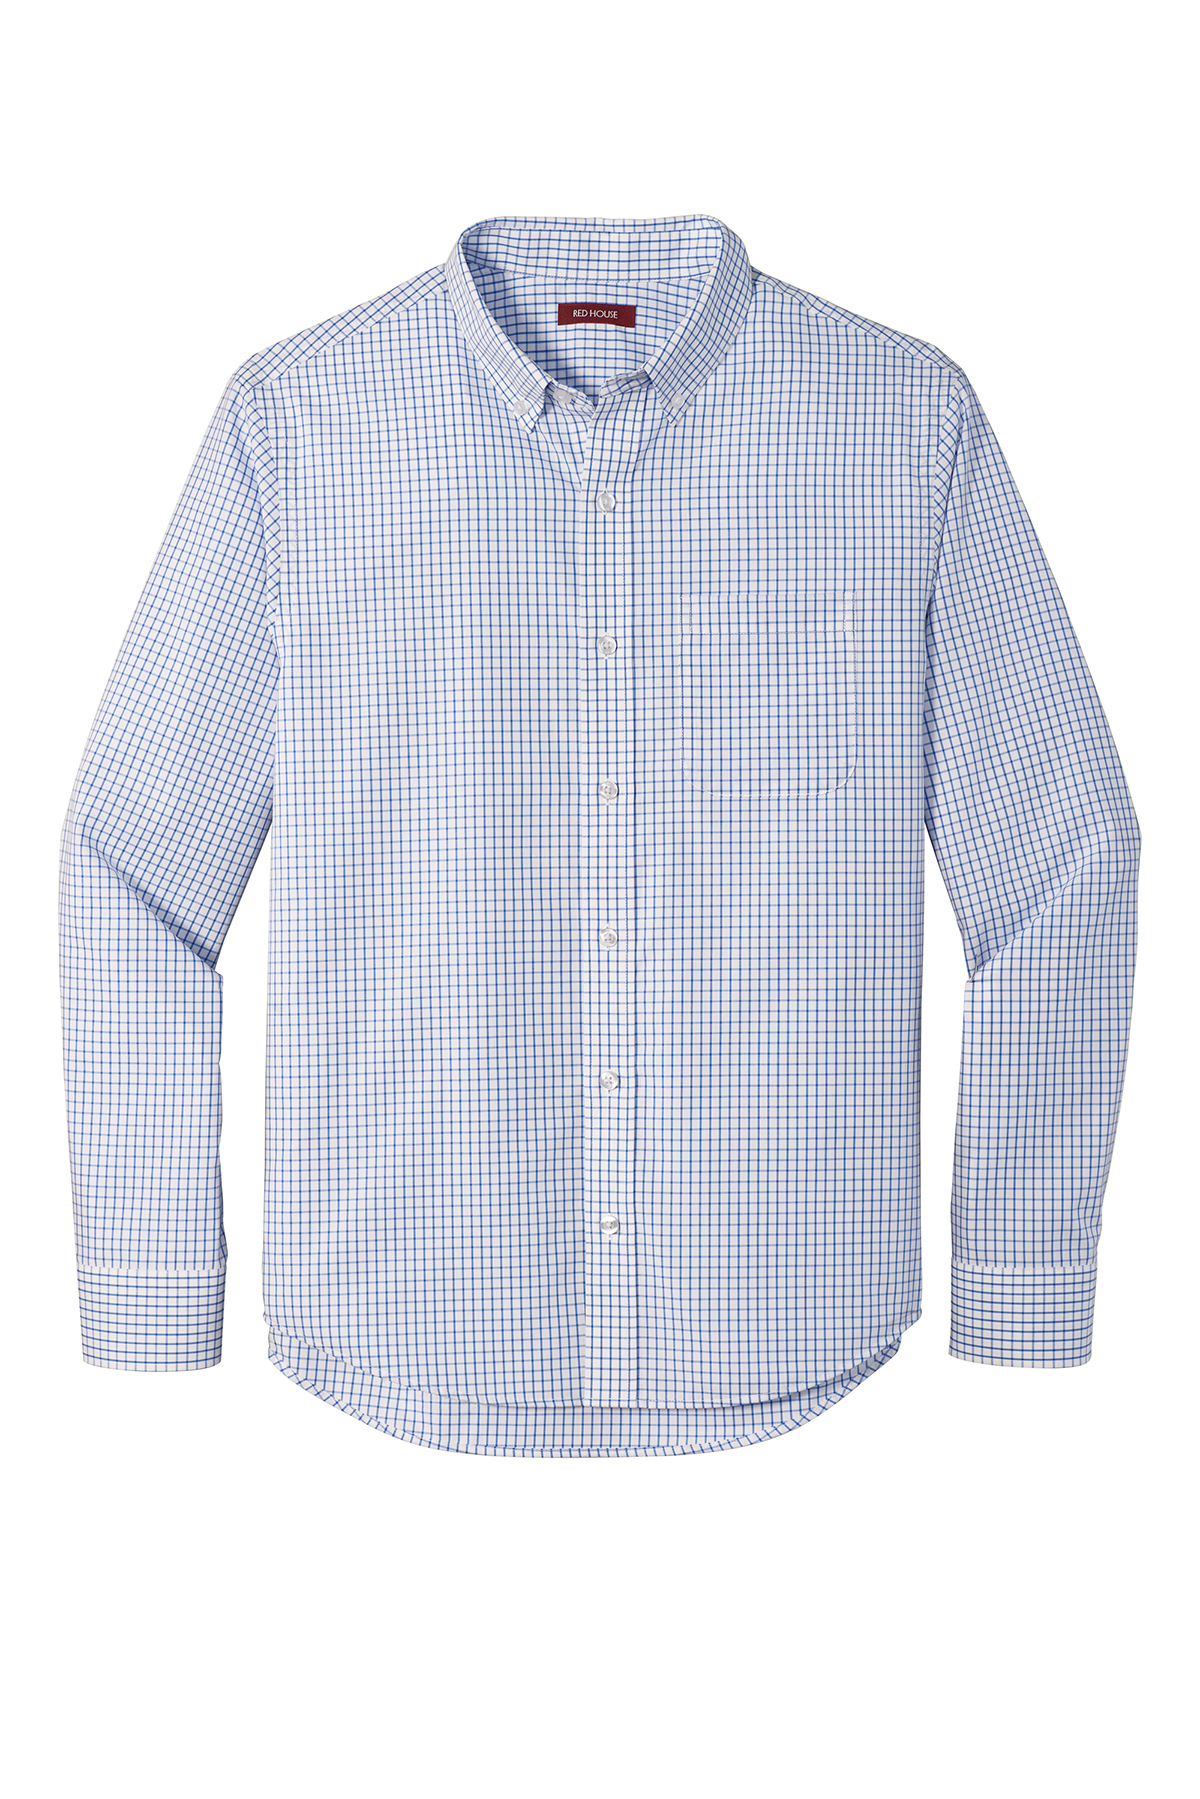 Red House ® RH85 - Open Ground Check Non-Iron Shirt